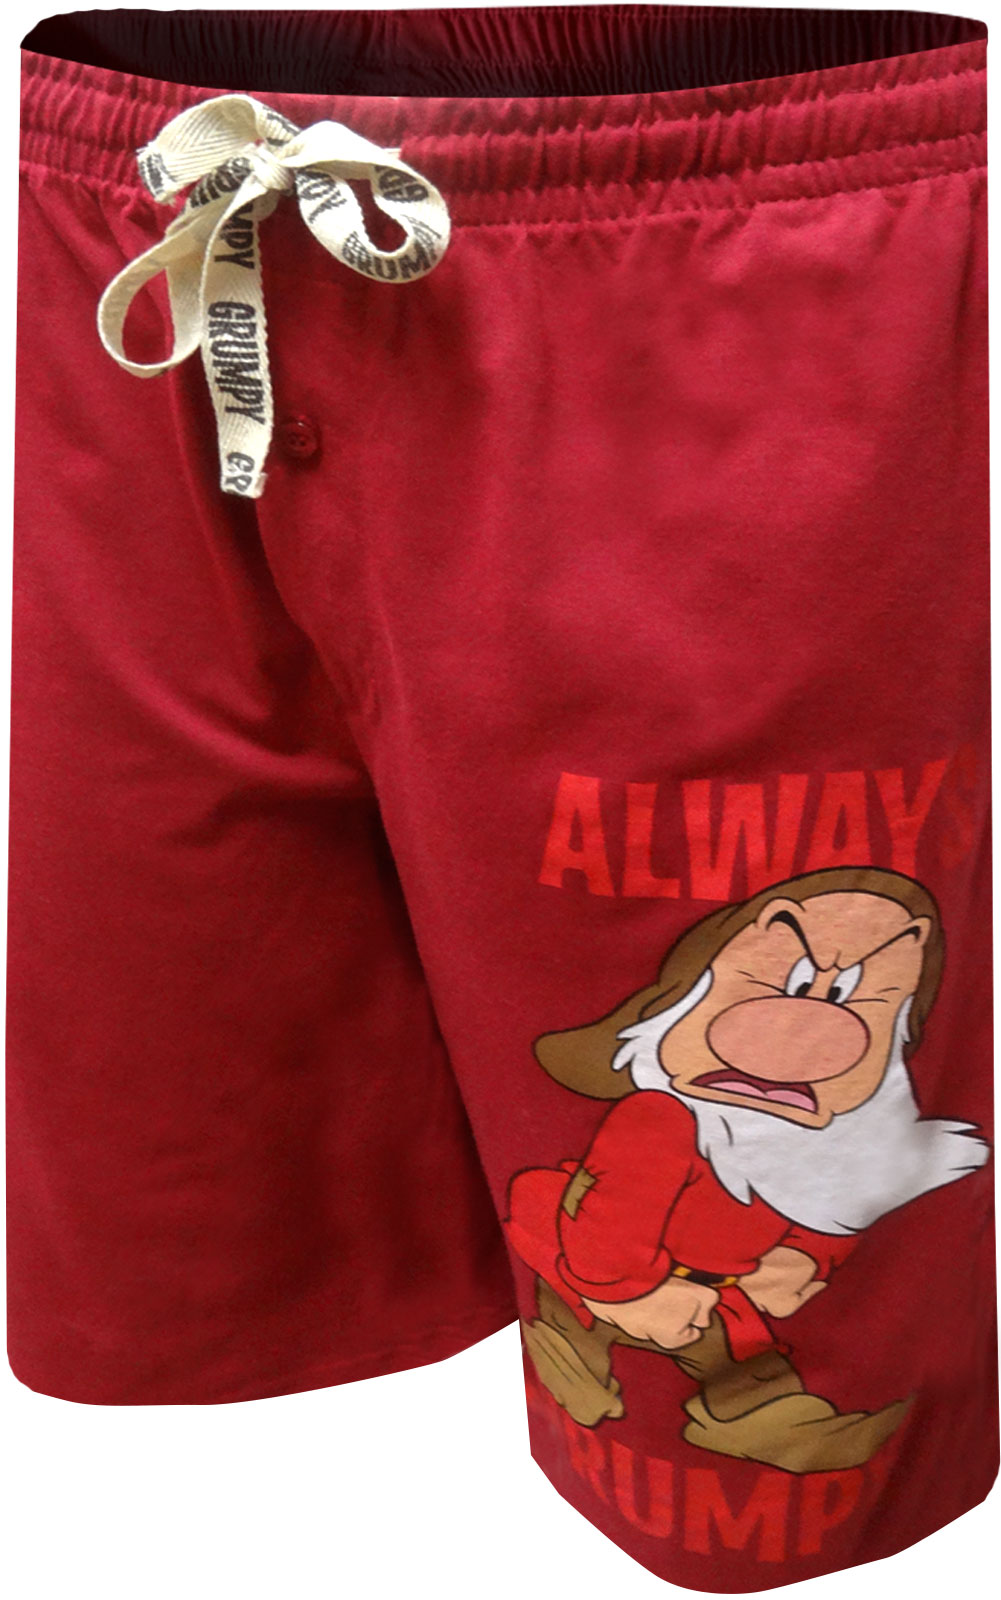 Image of Disney Snow White and the Seven Dwarfs Grumpy Lounge Shorts for men